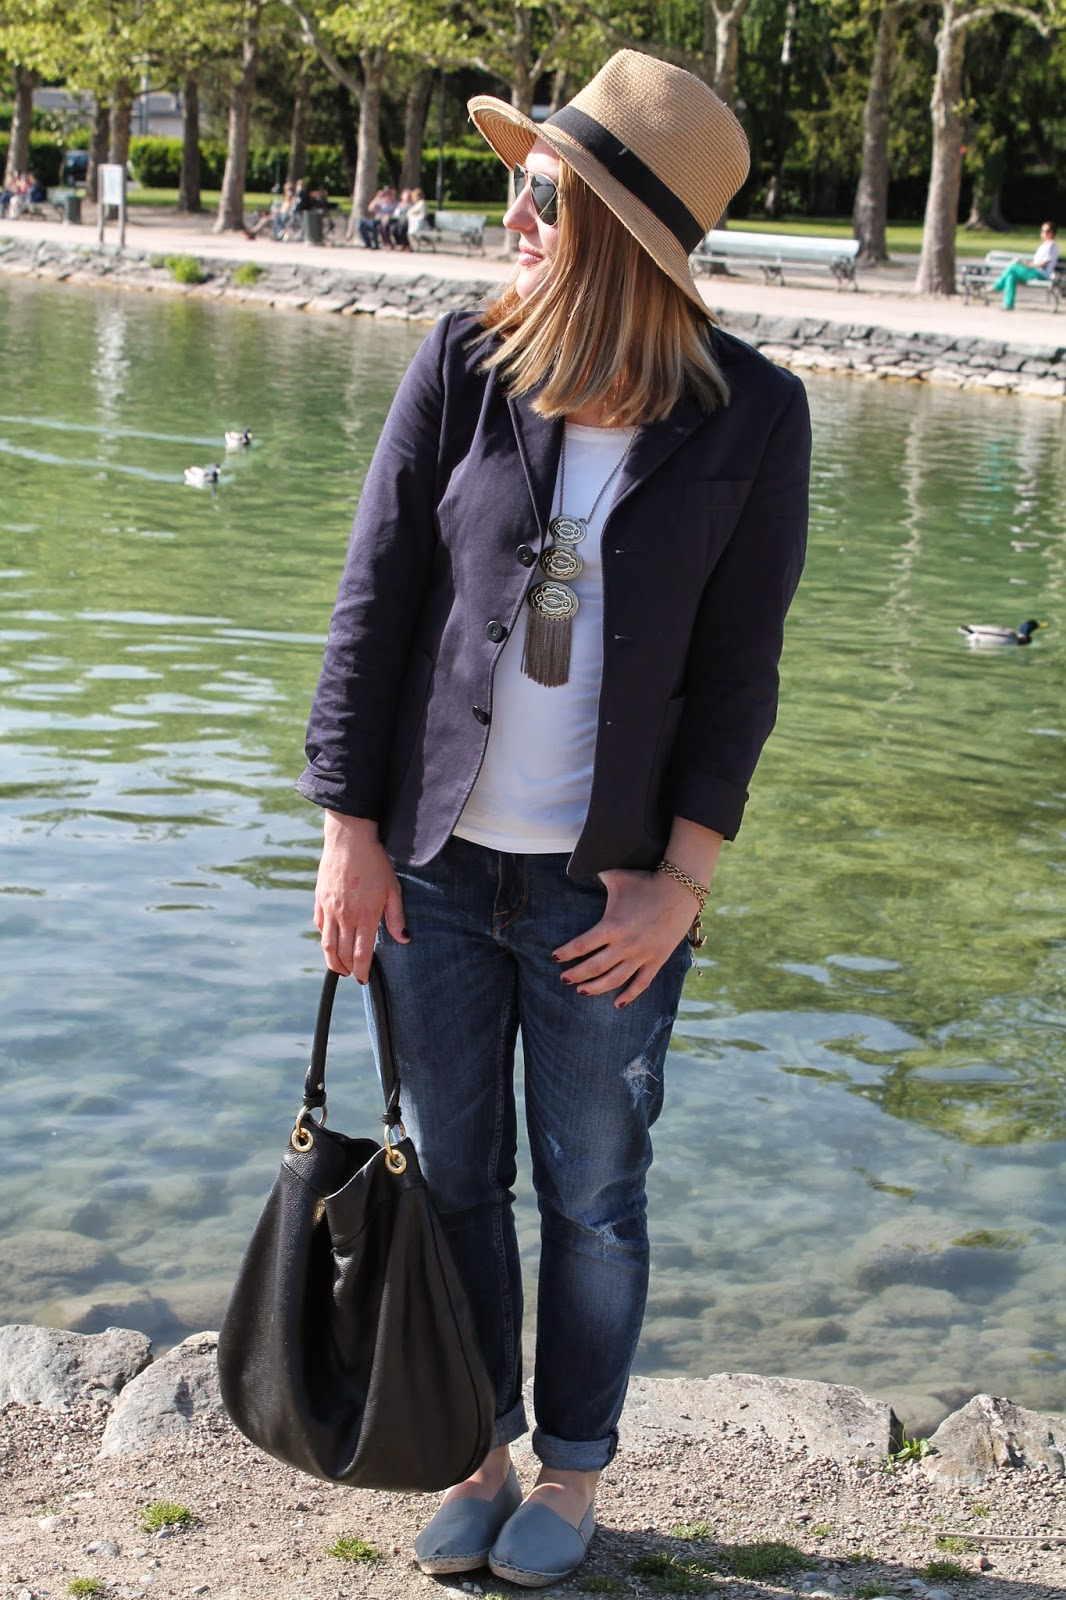 Fashionblogger Austria / Österreich / Deutsch / German / Kärnten / Carinthia / Klagenfurt / Köttmannsdorf / Spring Look / Classy / Edgy / Maritim / Marine / Blazer / How to Style / Hat / Forever 21 / Marc by Marc Jacobs / Hillier Hobo Bag / Necklace / Espadrillas / espadrij / Ray Ban / Ann Christine